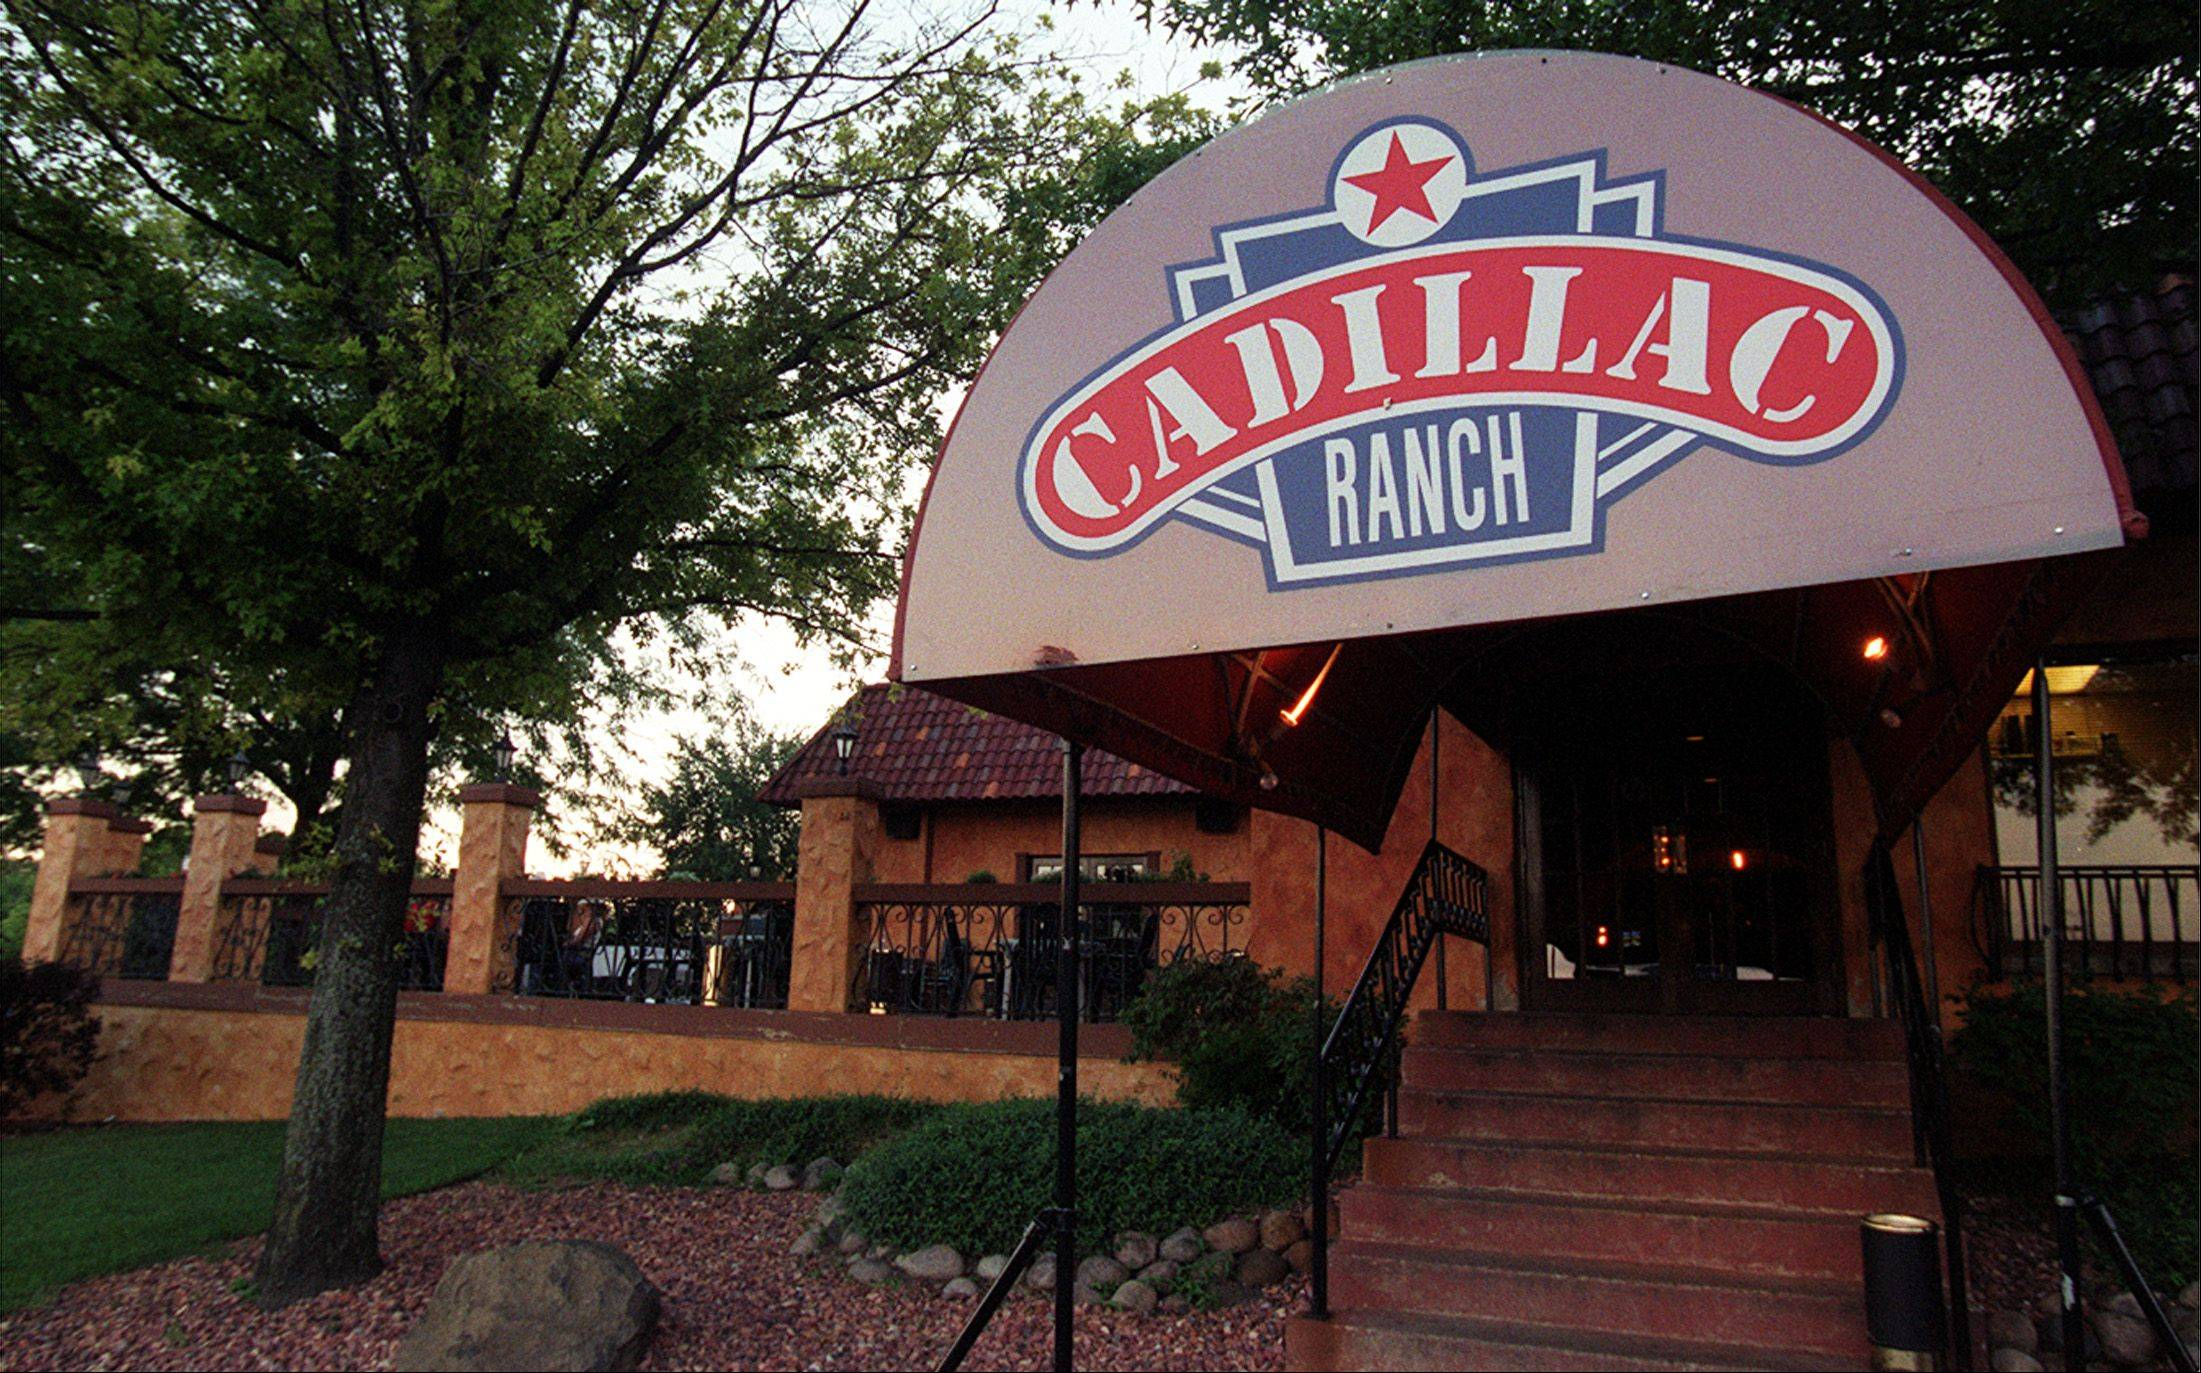 Bartlett police are seeking a 23-year-old Elgin man in connection with a shooting early Sunday morning outside the Cadillac Ranch nightclub. The victim, who was shot in the back of the head, was listed in stable condition Monday.